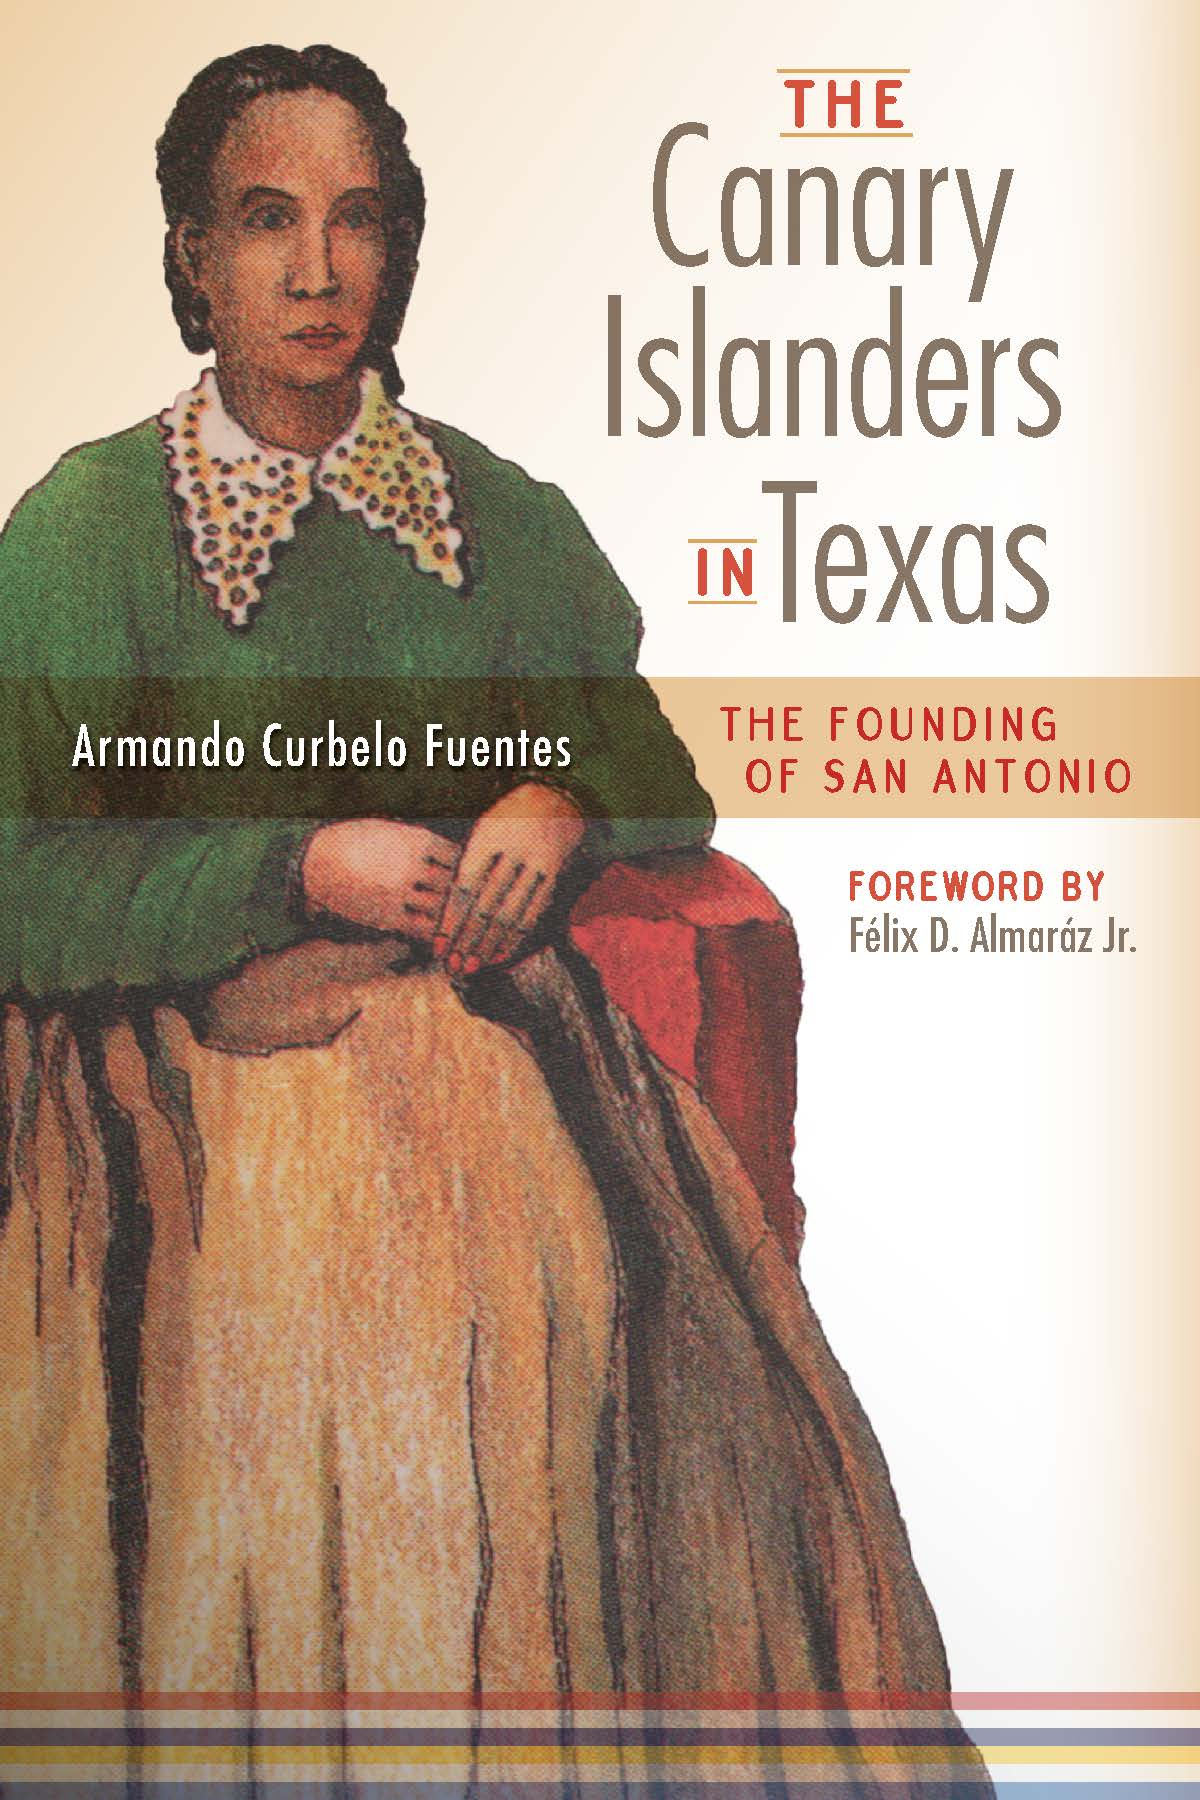 The Canary Islanders in Texas The Story of the Founding of San Antonio